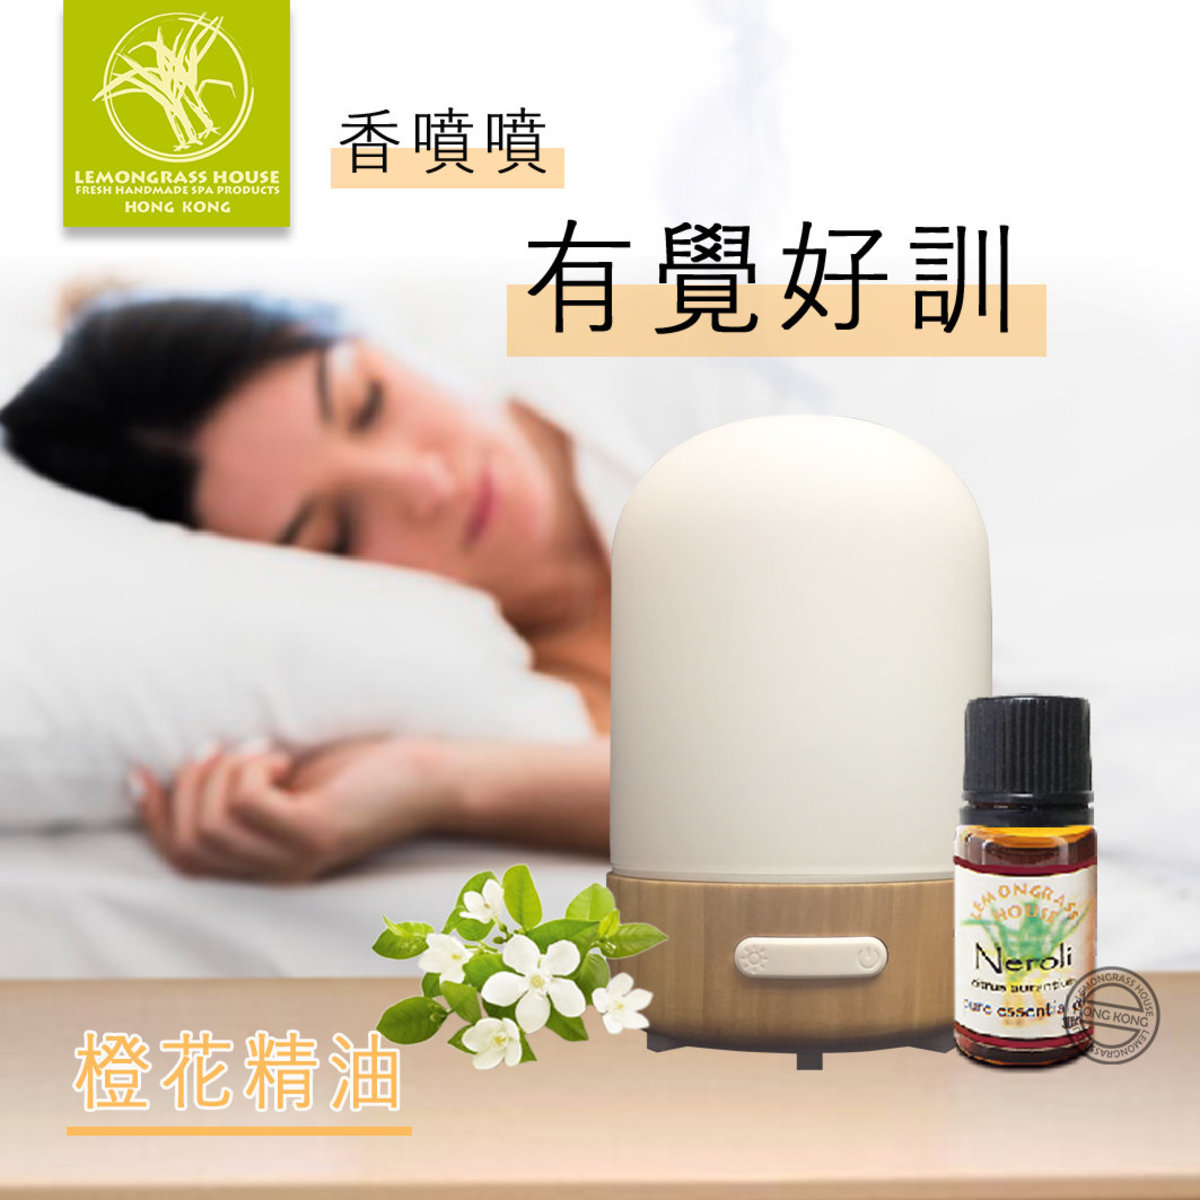 Aroma Set (Mini Glass Aroma Diffuser & Essential Oil Neroli 30ml)